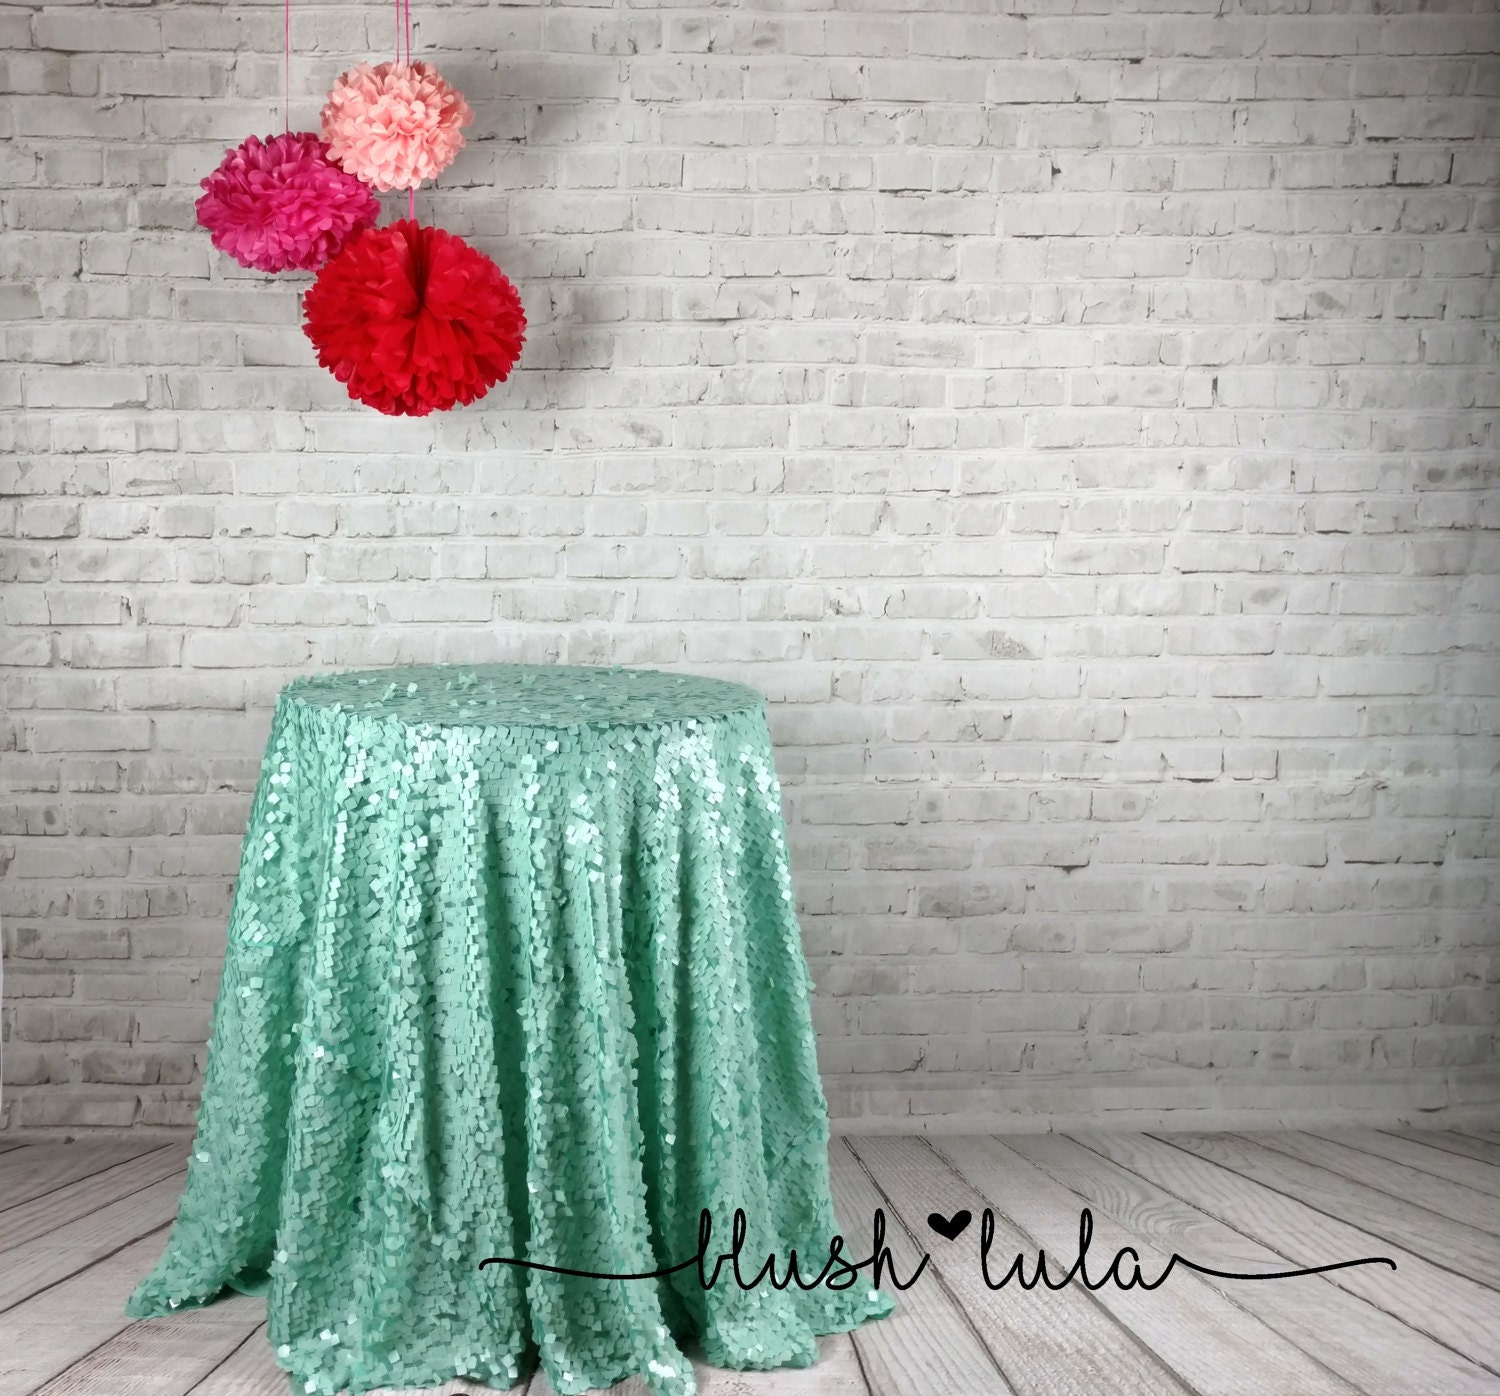 Mermaid Mint Square Sequin On Tulle Tablecloth Overlay